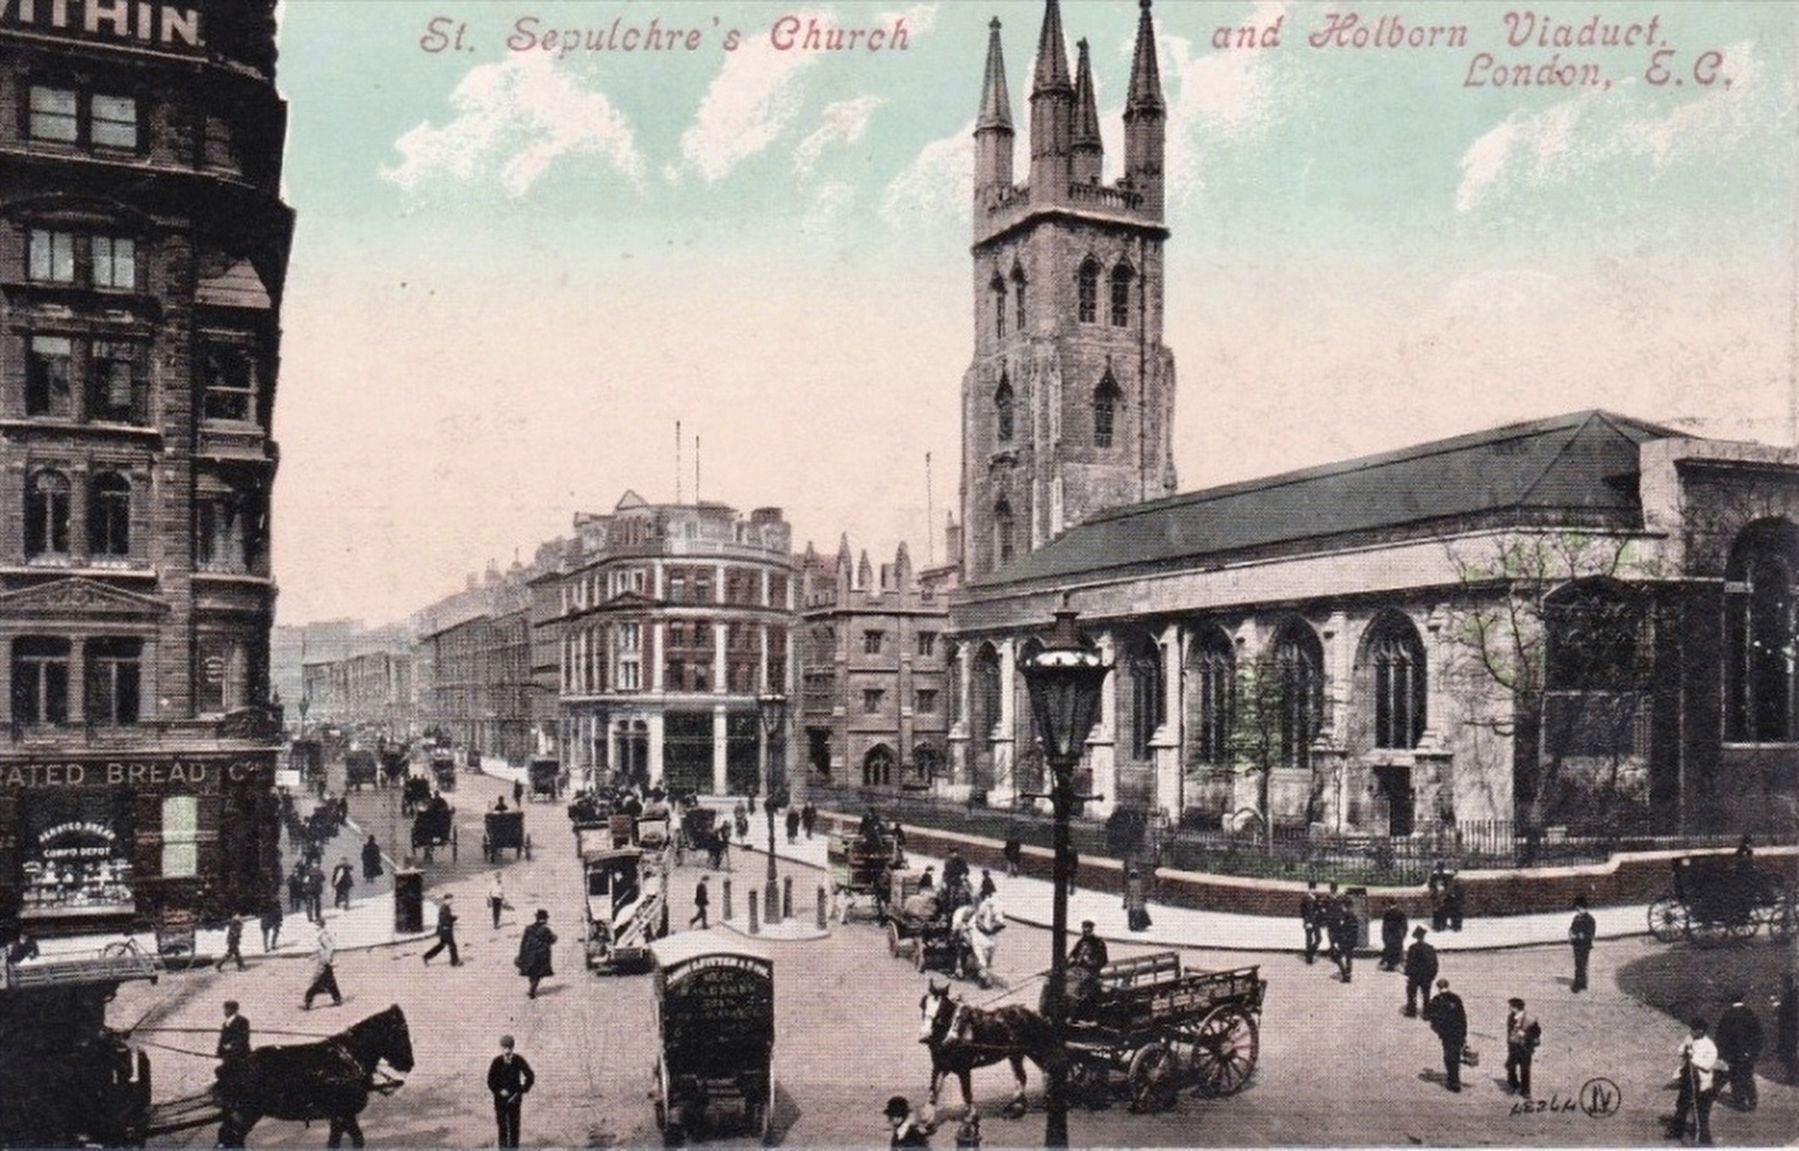 <i>St. Sepulchre&#39;s Church and Holborn Viaduct, London, E.C.</i> image. Click for full size.